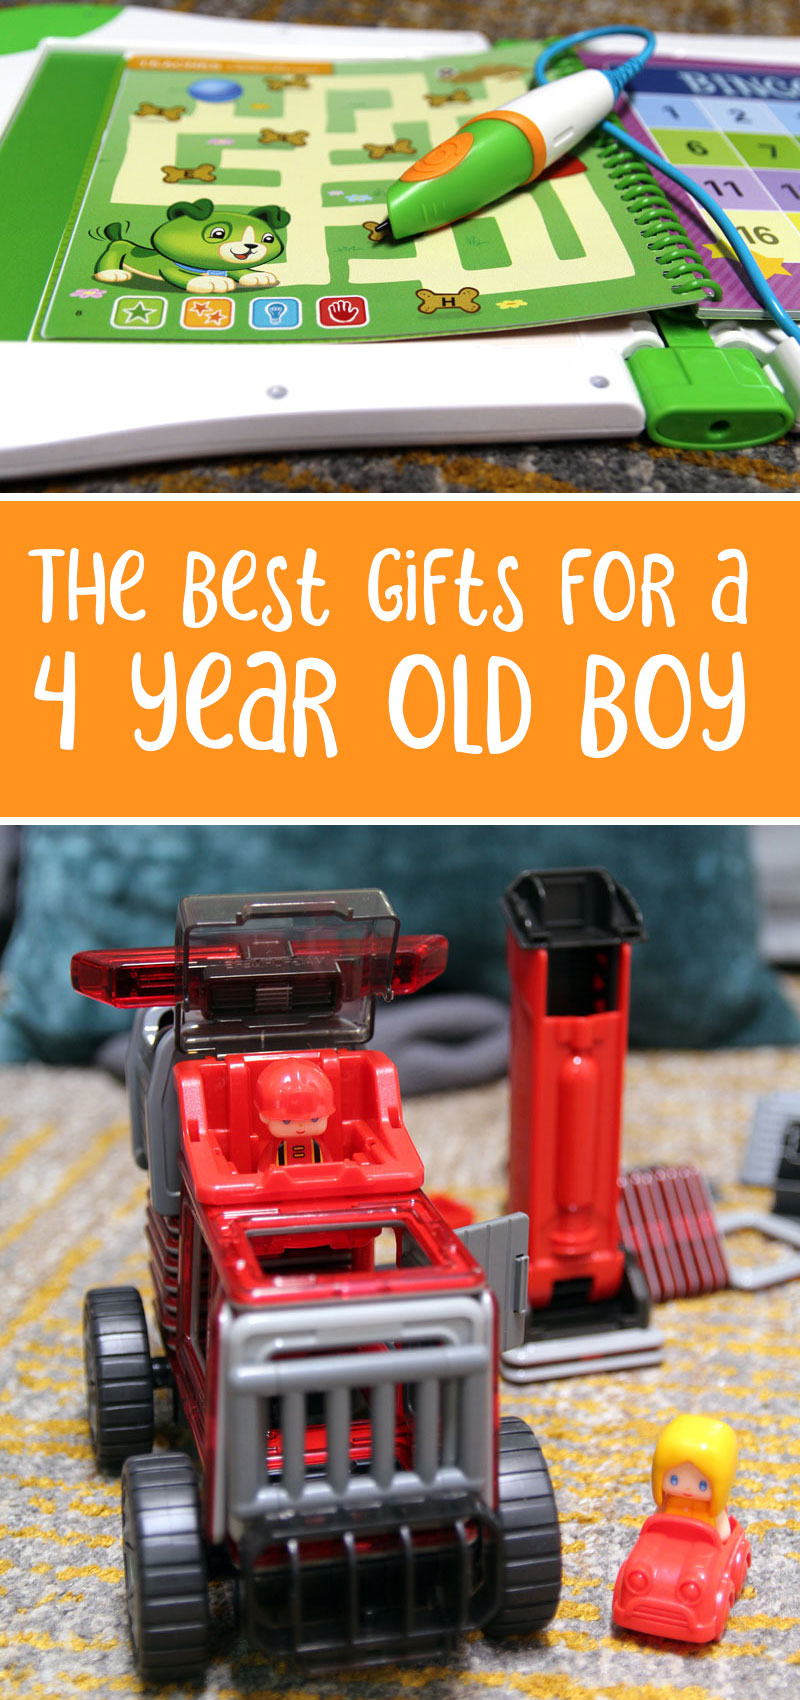 Four year old boy birthday gift ideas